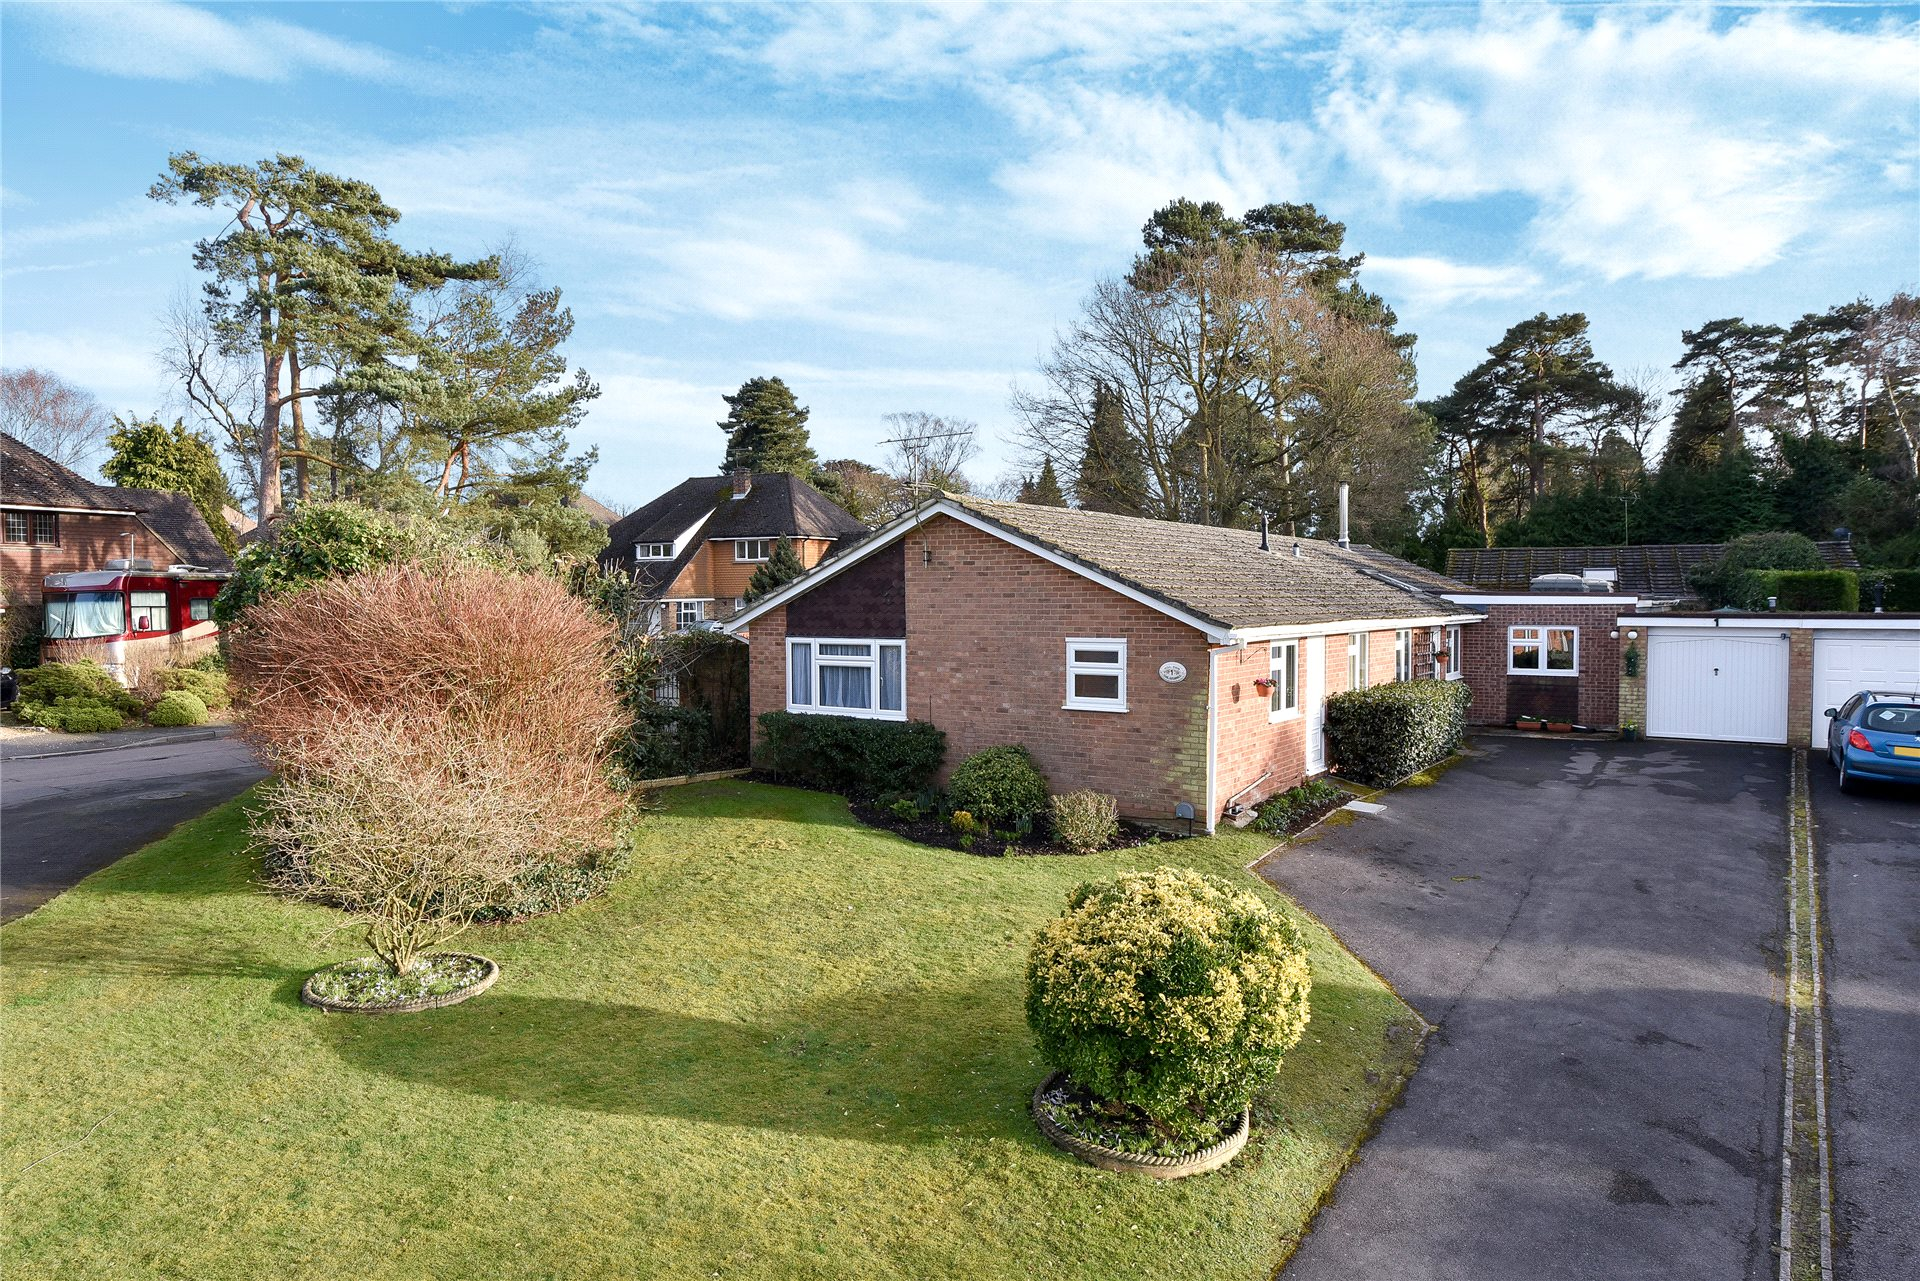 5 Bedrooms Detached Bungalow for sale in The Spinney, Camberley, Surrey, GU15